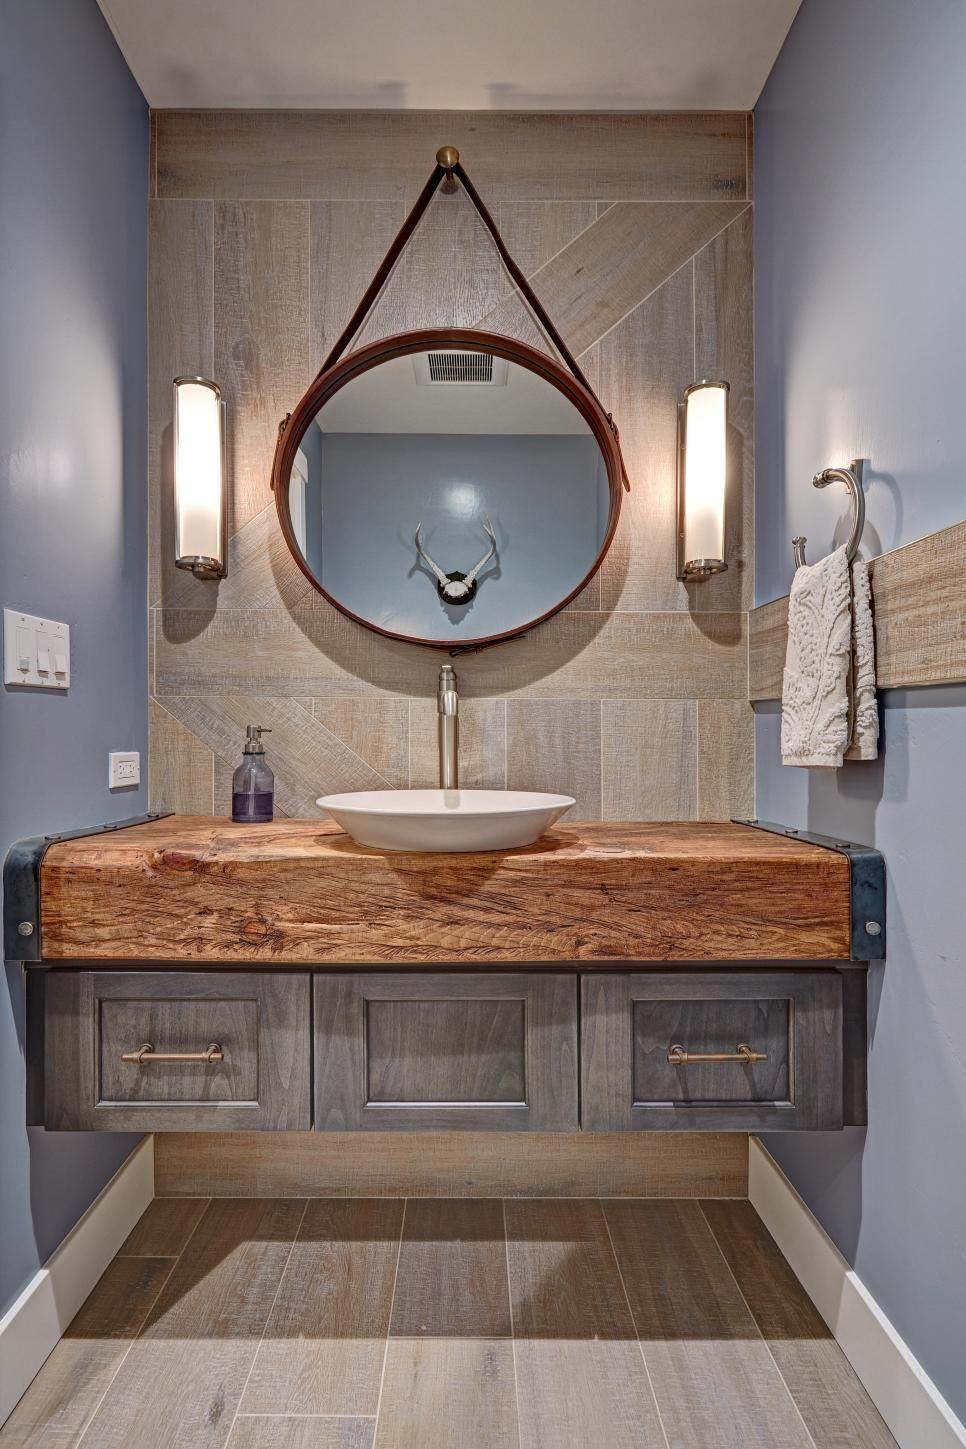 Industrial Eclectic Bathroom Rustic Modern Bathroom Industrial Bathroom Decor Eclectic Bathroom